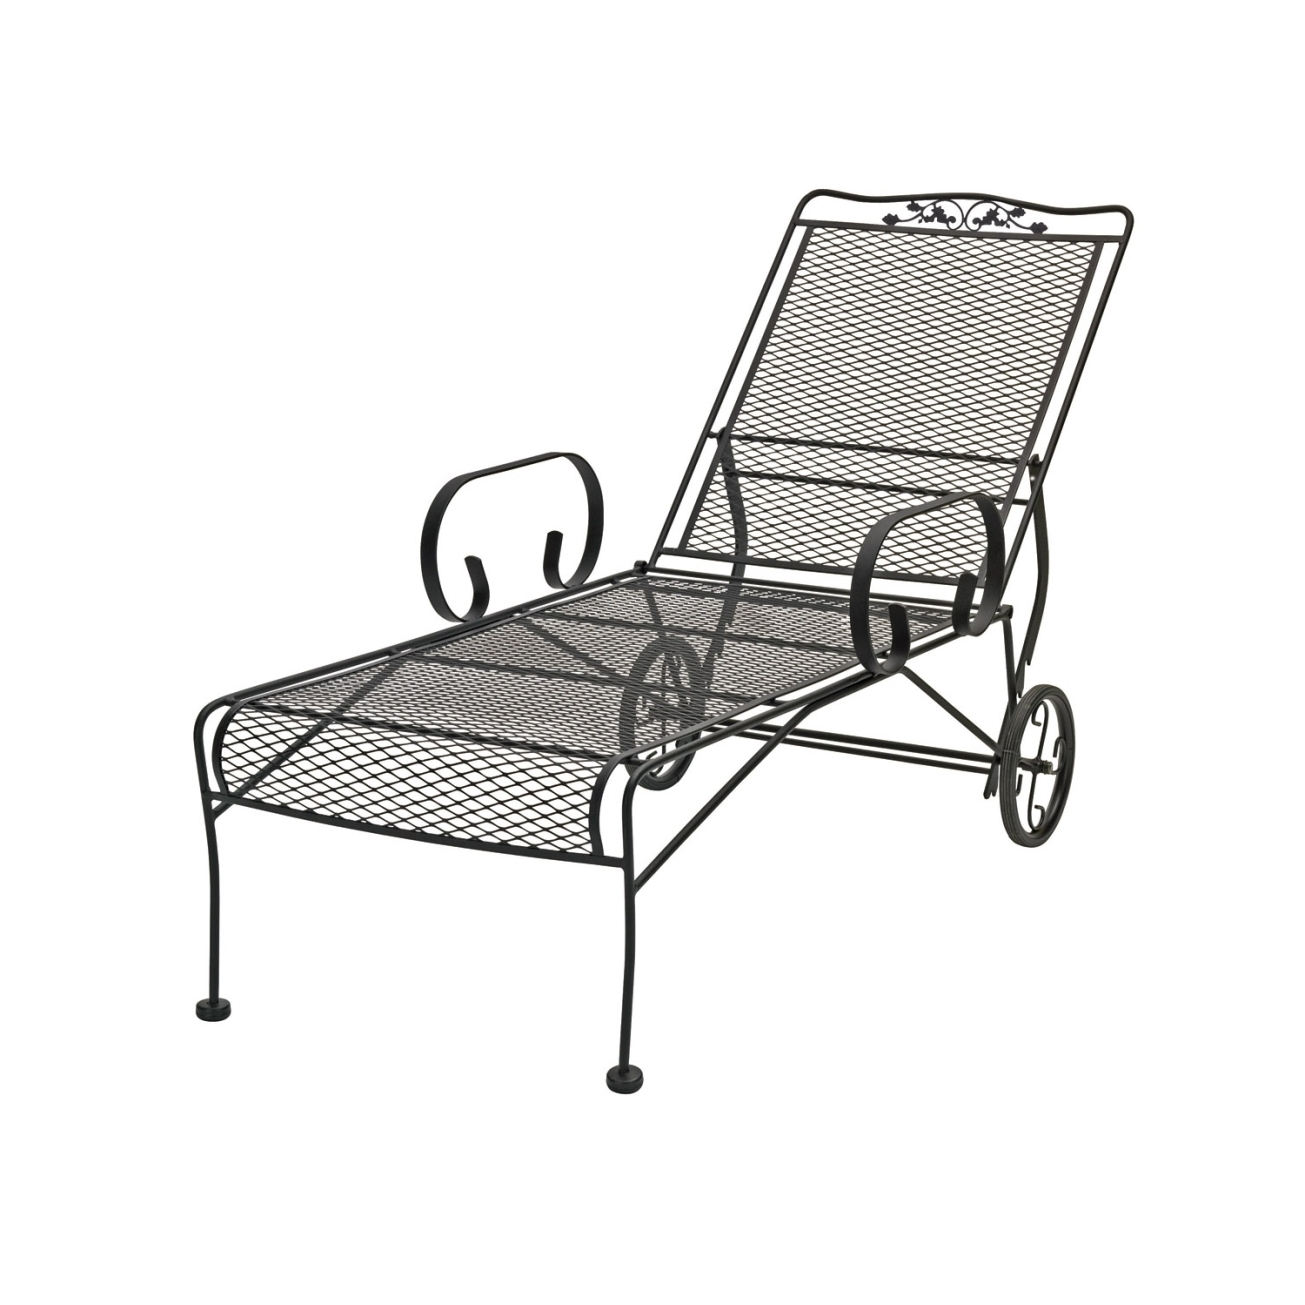 Lounge Chair : Discount Outdoor Furniture Rolston Patio Furniture With 2018 Chaise Lounge Chairs For Outdoors (View 8 of 15)